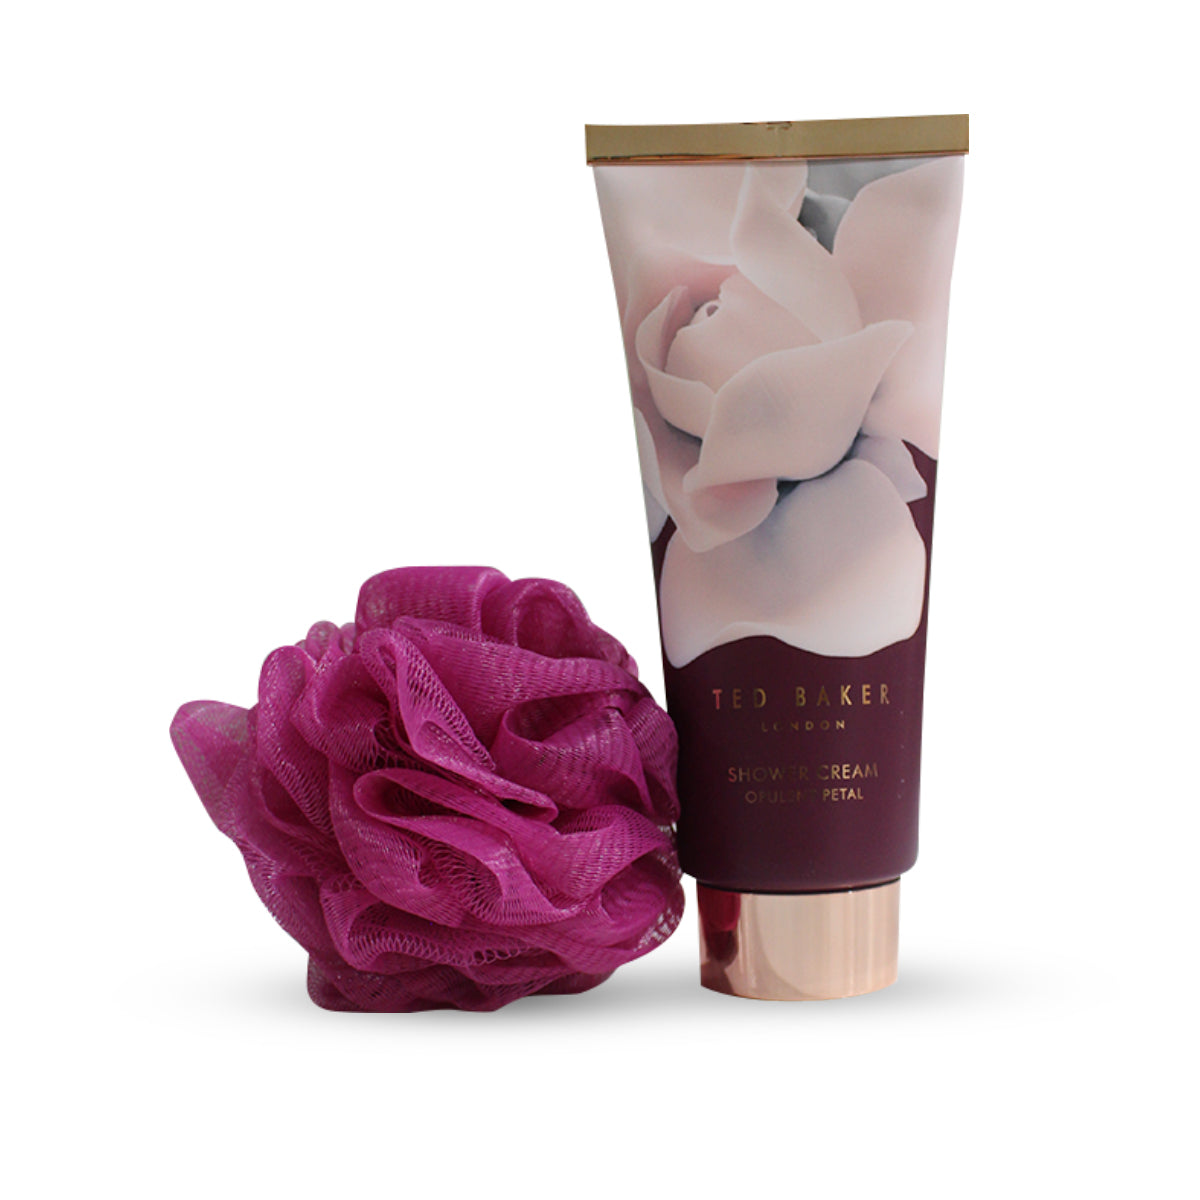 Ted Baker London Shower Cream Opulent Petal